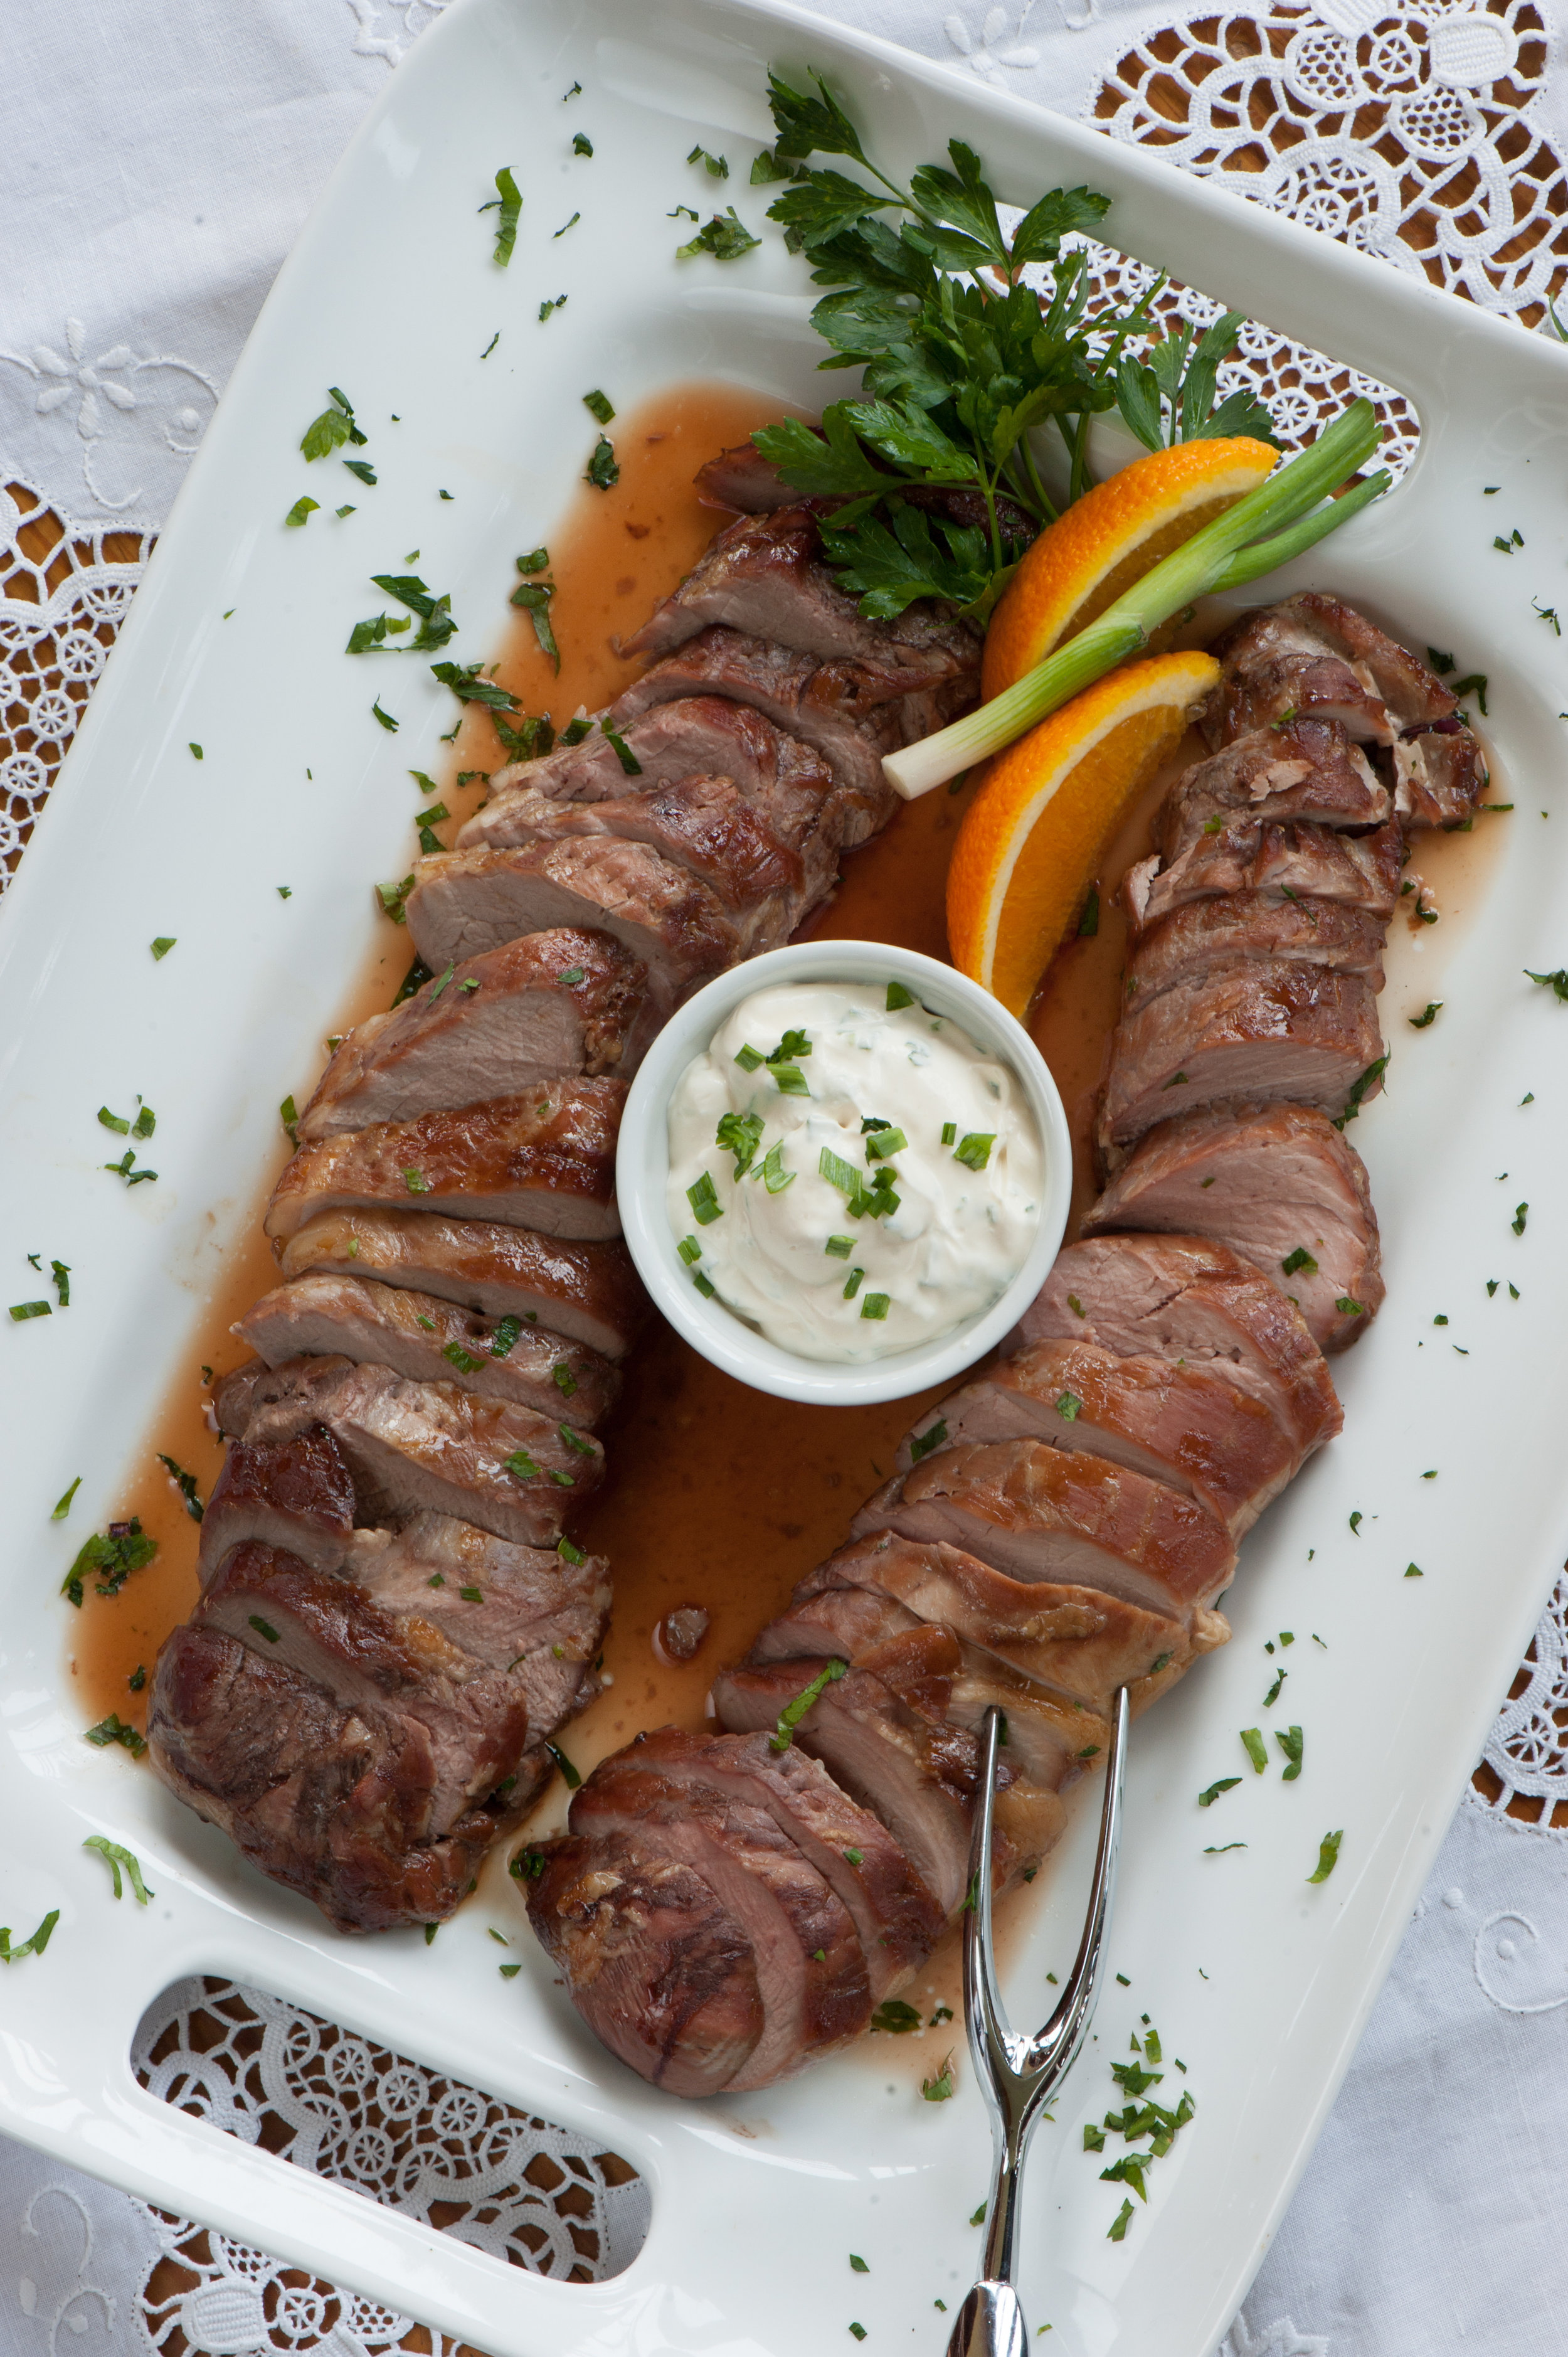 Pork Tenderloin with Scallion Sauce. - Serves 6 to 8Marinade1 pork tenderloin (3 pounds)1/4 cup soy sauce1/4 cup bourbon2 tablespoons brown sugarGreen Onion Sauce2/3 cup sour cream2/3 cup mayonnaise1 tablespoon ground mustard seed2 to 3 green onions, finely choppedCombine marinade ingredients and stir to dissolve sugar. Pur into a Ziploc freezer bag. Place tenderloin in bag and remove air so marinade covers entire tenderloin. Place in a pan and refrigerate for several hours or overnight.Preheat oven to 325 degrees F.Remove tenderloin from marinade. Place on rack in a shallow roasting pan and cook for approximately 45 minutes or until a meat thermometer reads 160 degrees F.Allow to rest for 10 minutes before slicing. Serve with Green Onion Sauce.For the Green Onion Sauce: Combine all ingredients in a small bowl. Cover and refrigerate for several hours before serving to allow flavors to develop.